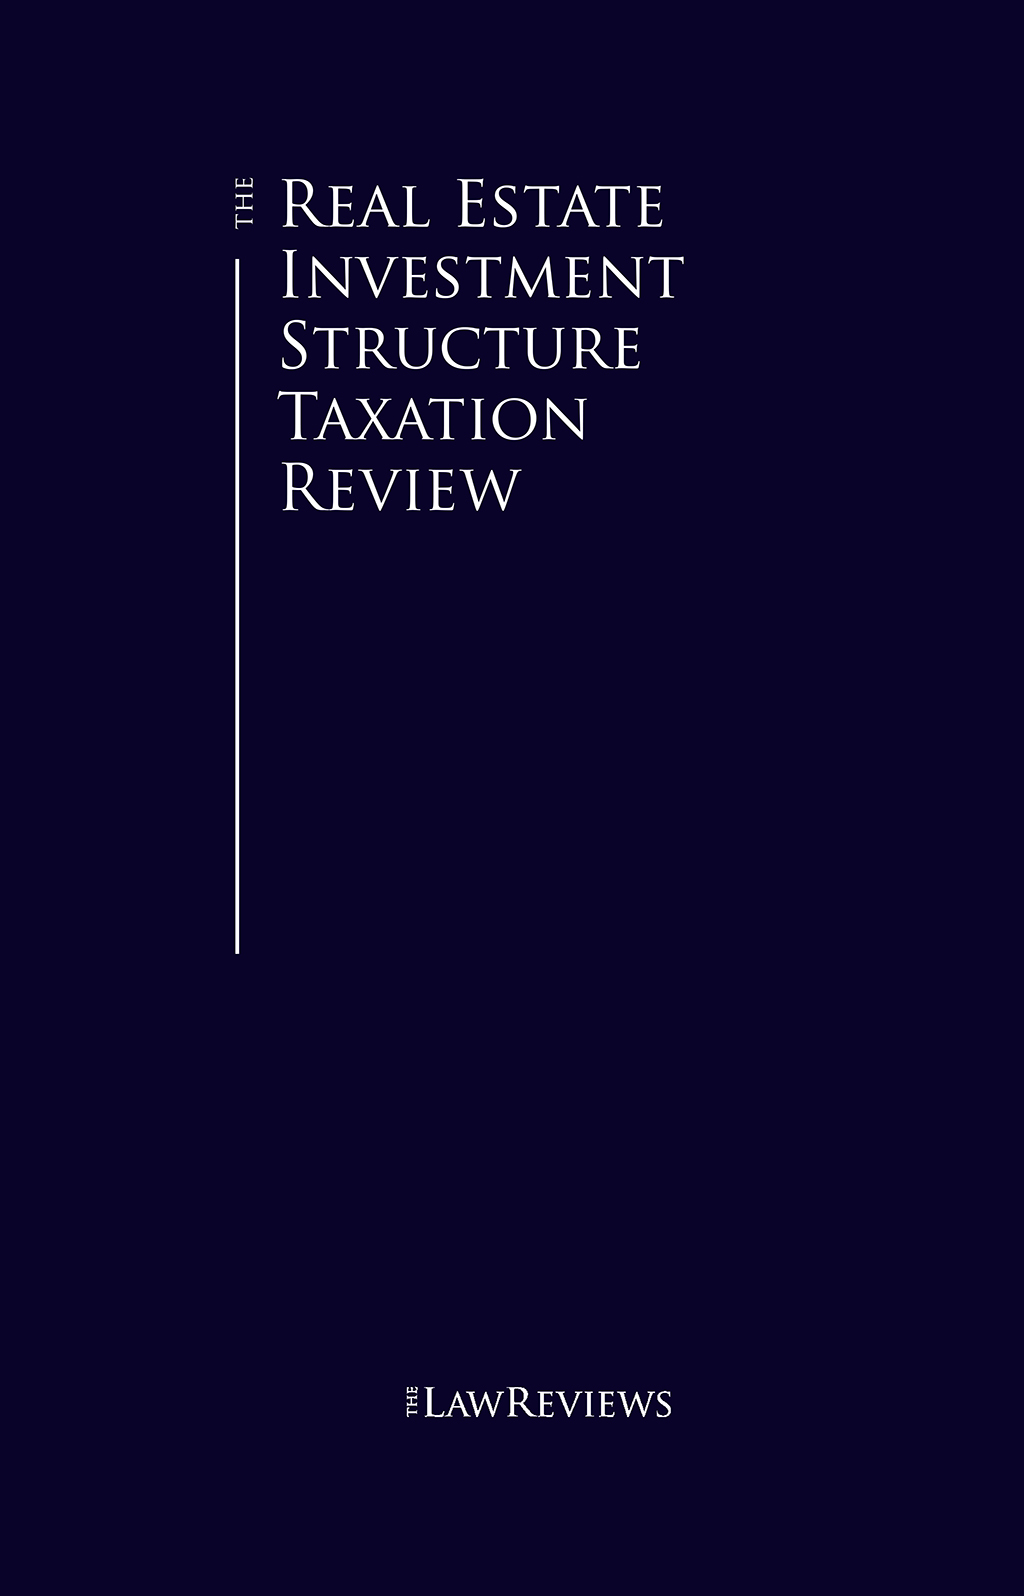 The Real Estate Investment Structure Taxation Review